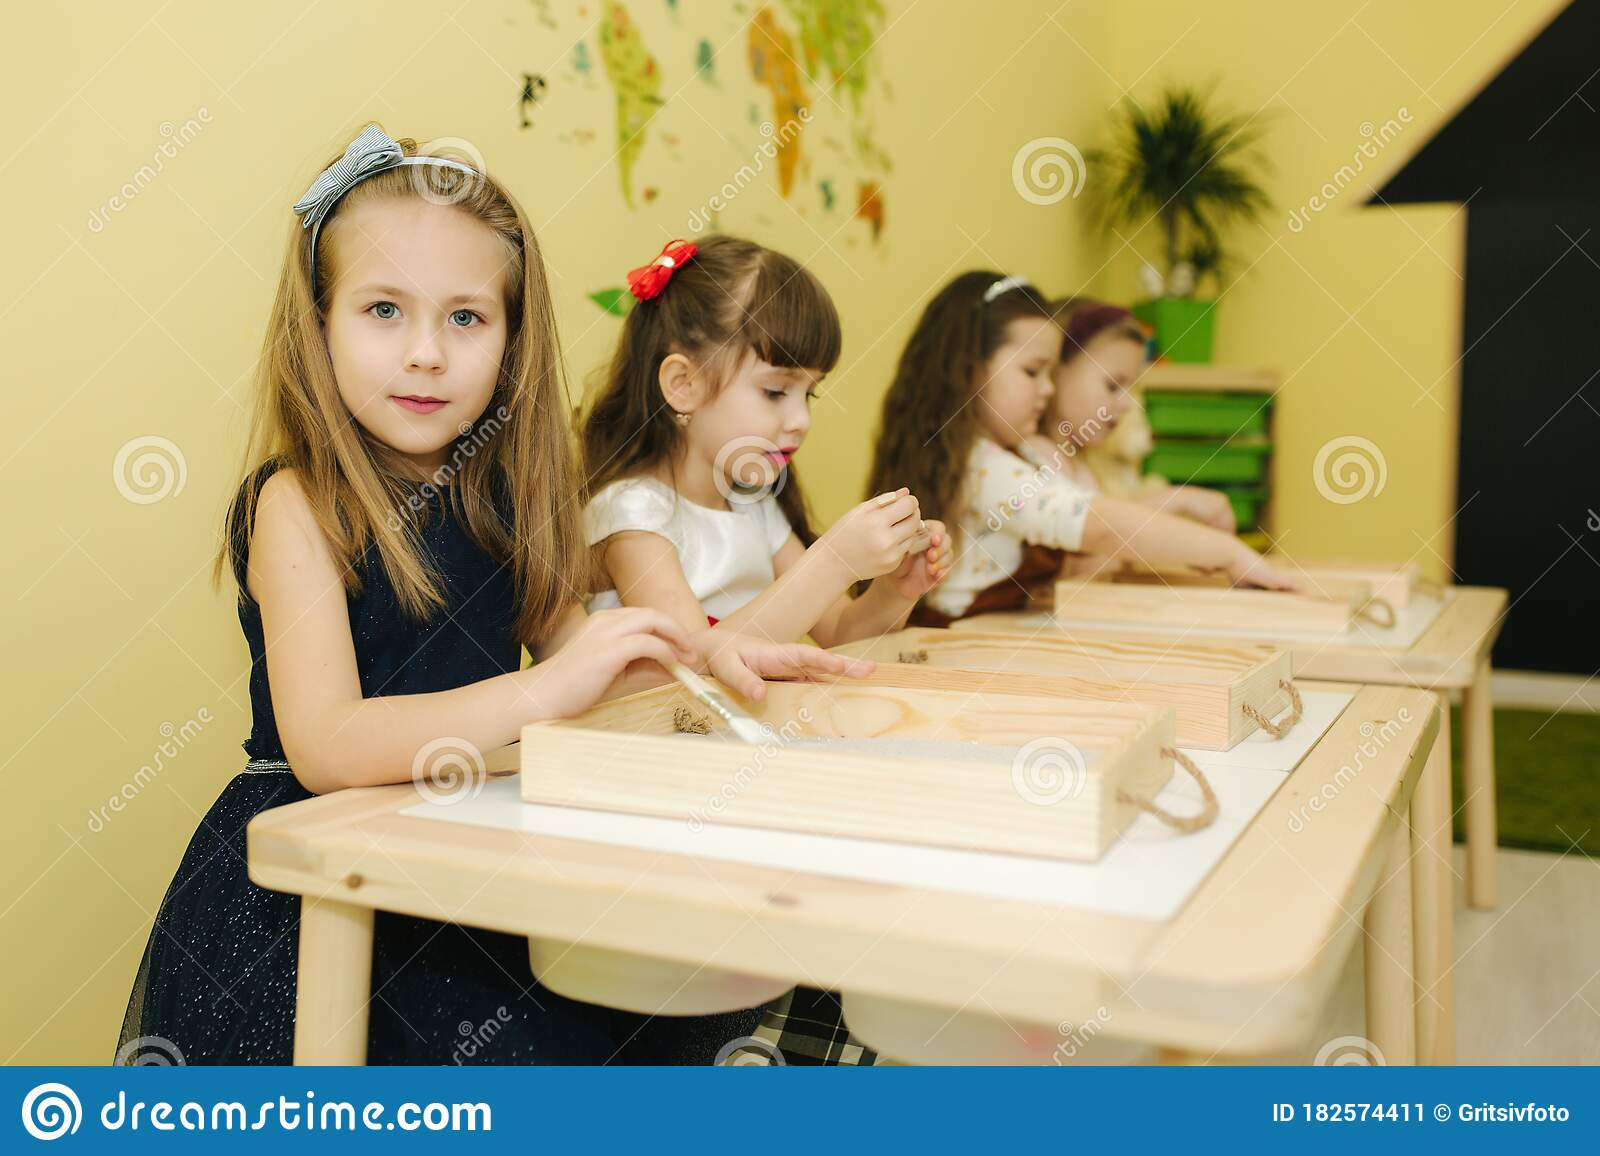 Kids In Class Create Drawing By Sand. Children Use Tassel For Rawing.  Preschool Stock Image - Image of creative, education: 182574411